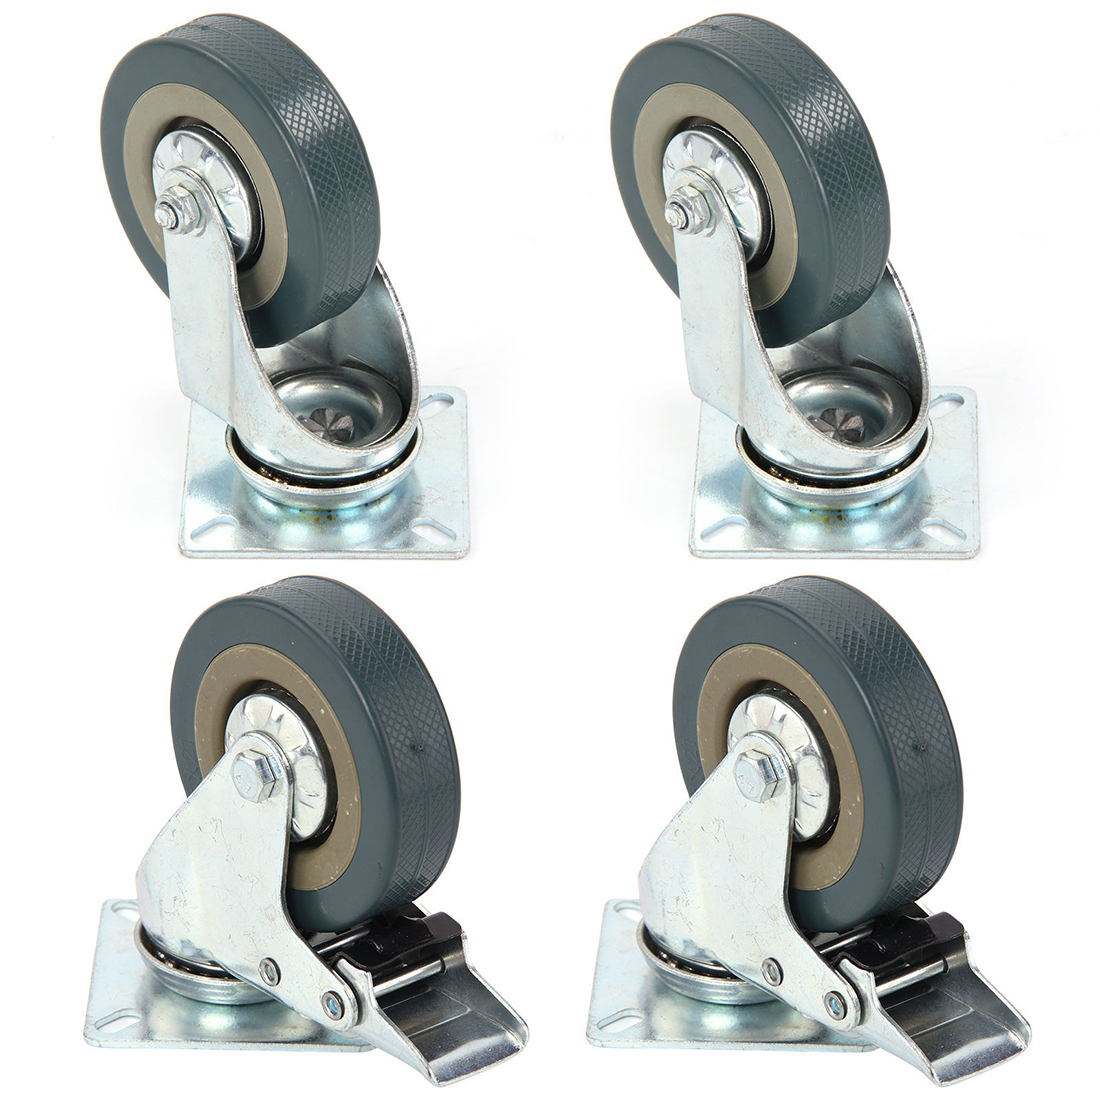 Set of Heavy Duty 75x21mm Rubber Swivel Castor Wheels Trolley Caster Brake 50KG 2 With brake + 2 Without Brake Universal Wheel new 4 swivel wheels caster industrial castor universal wheel artificial rubber heavy casters brake 360 degree rolling castors